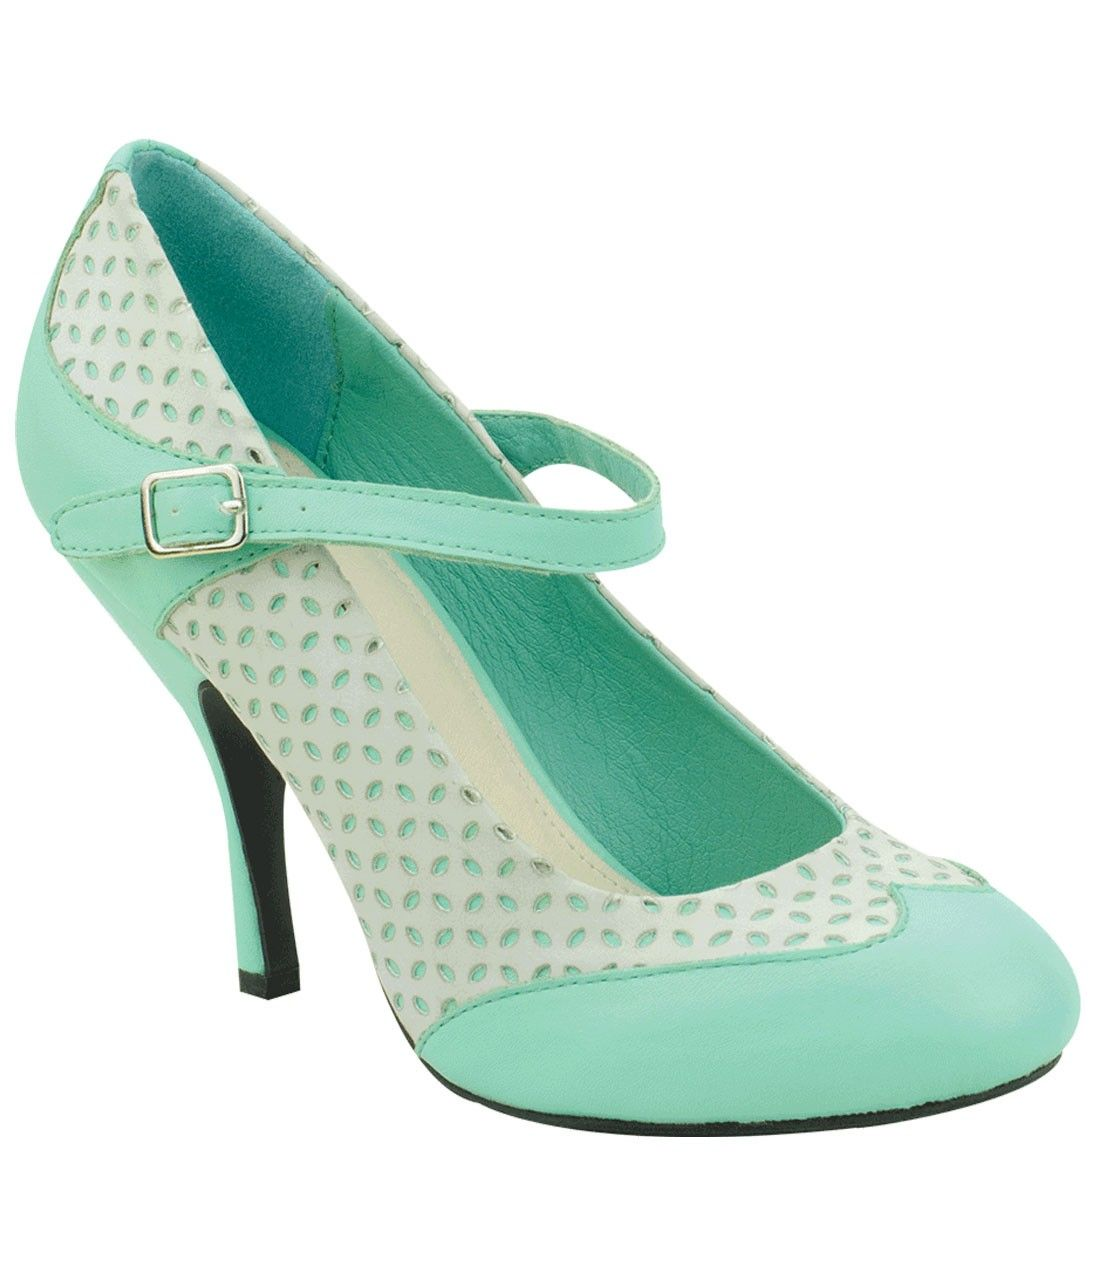 Mint & White Closed Toe Bombshell Mary Jane Pumps | Unique Vintage